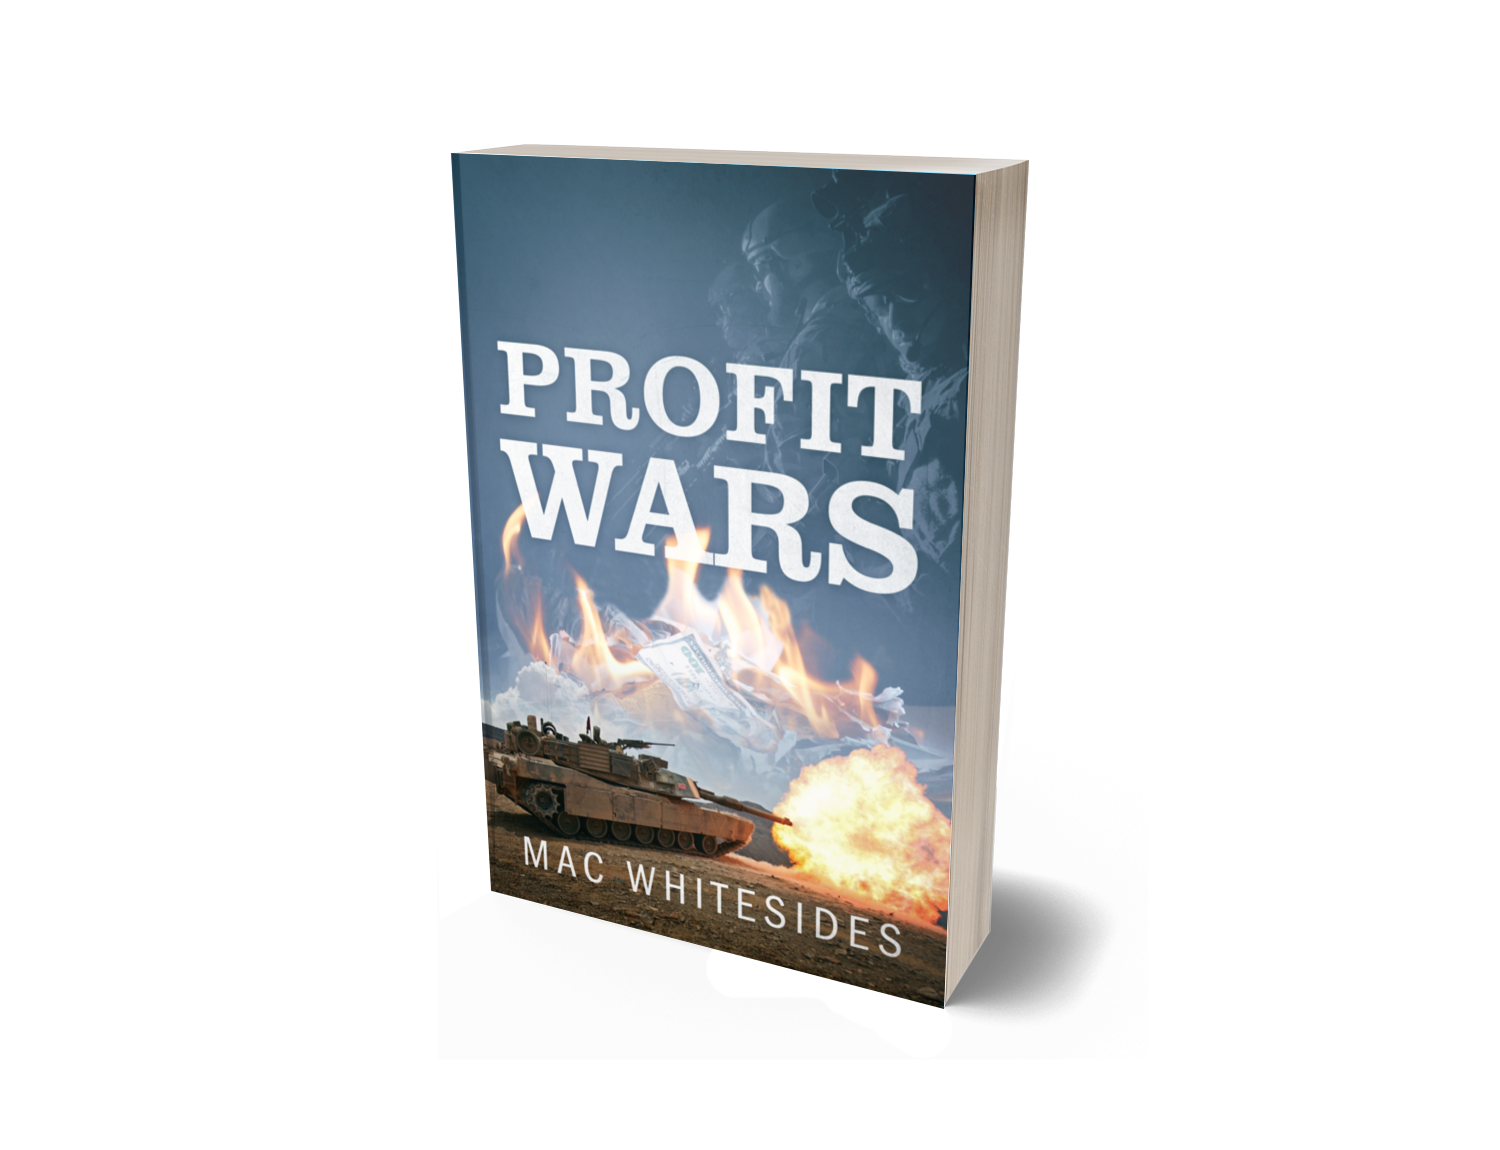 Profit Wars Mac Whitesides